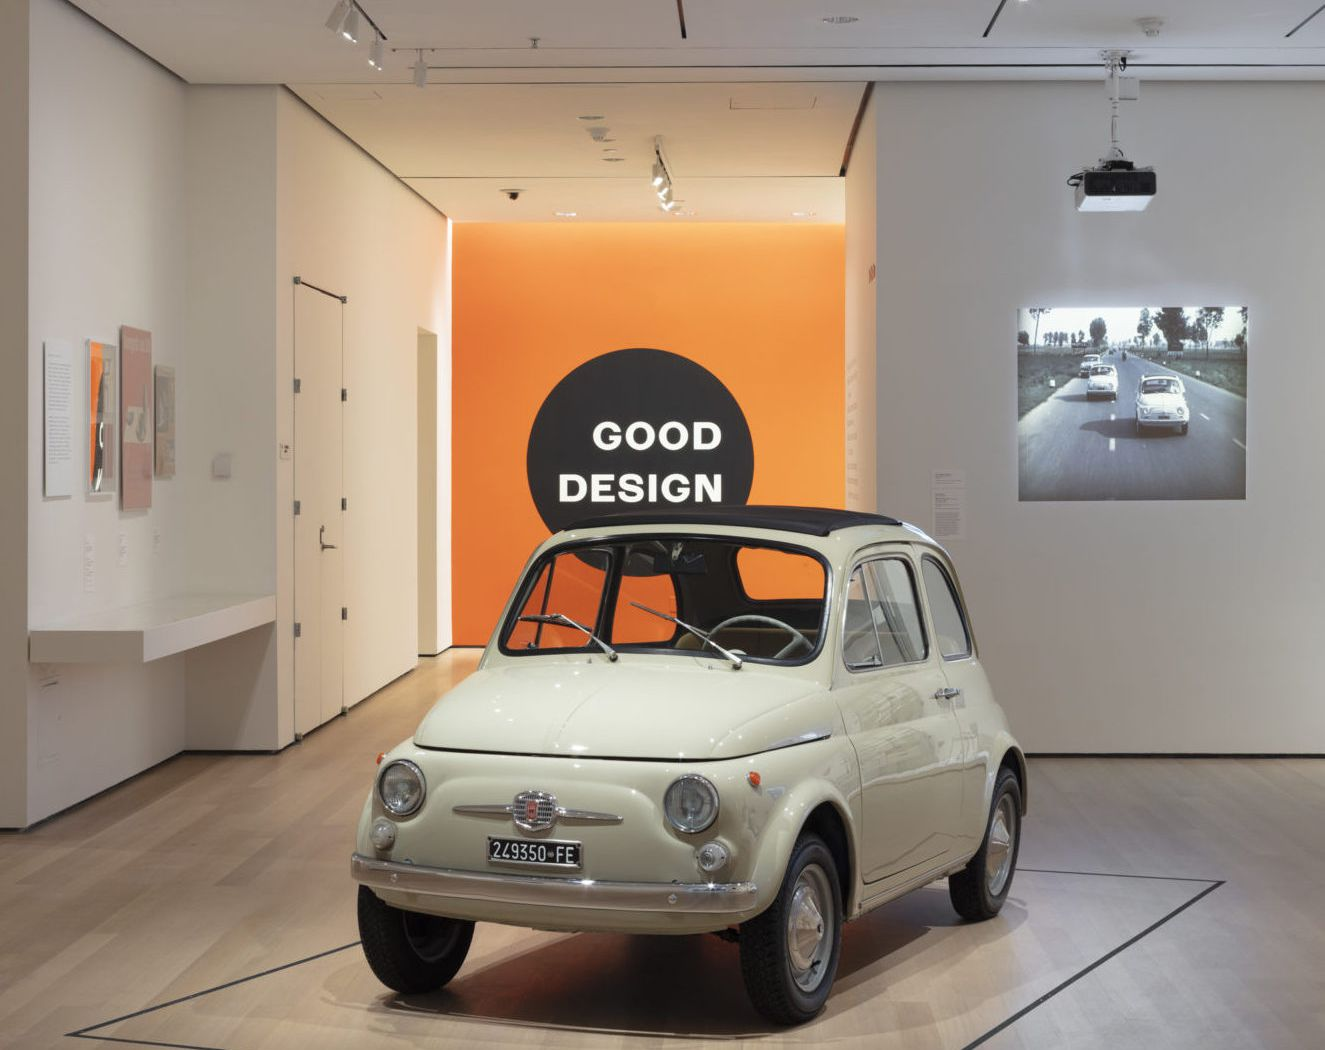 Moma S Good Design Exhibition And Lessons For Today Curbed